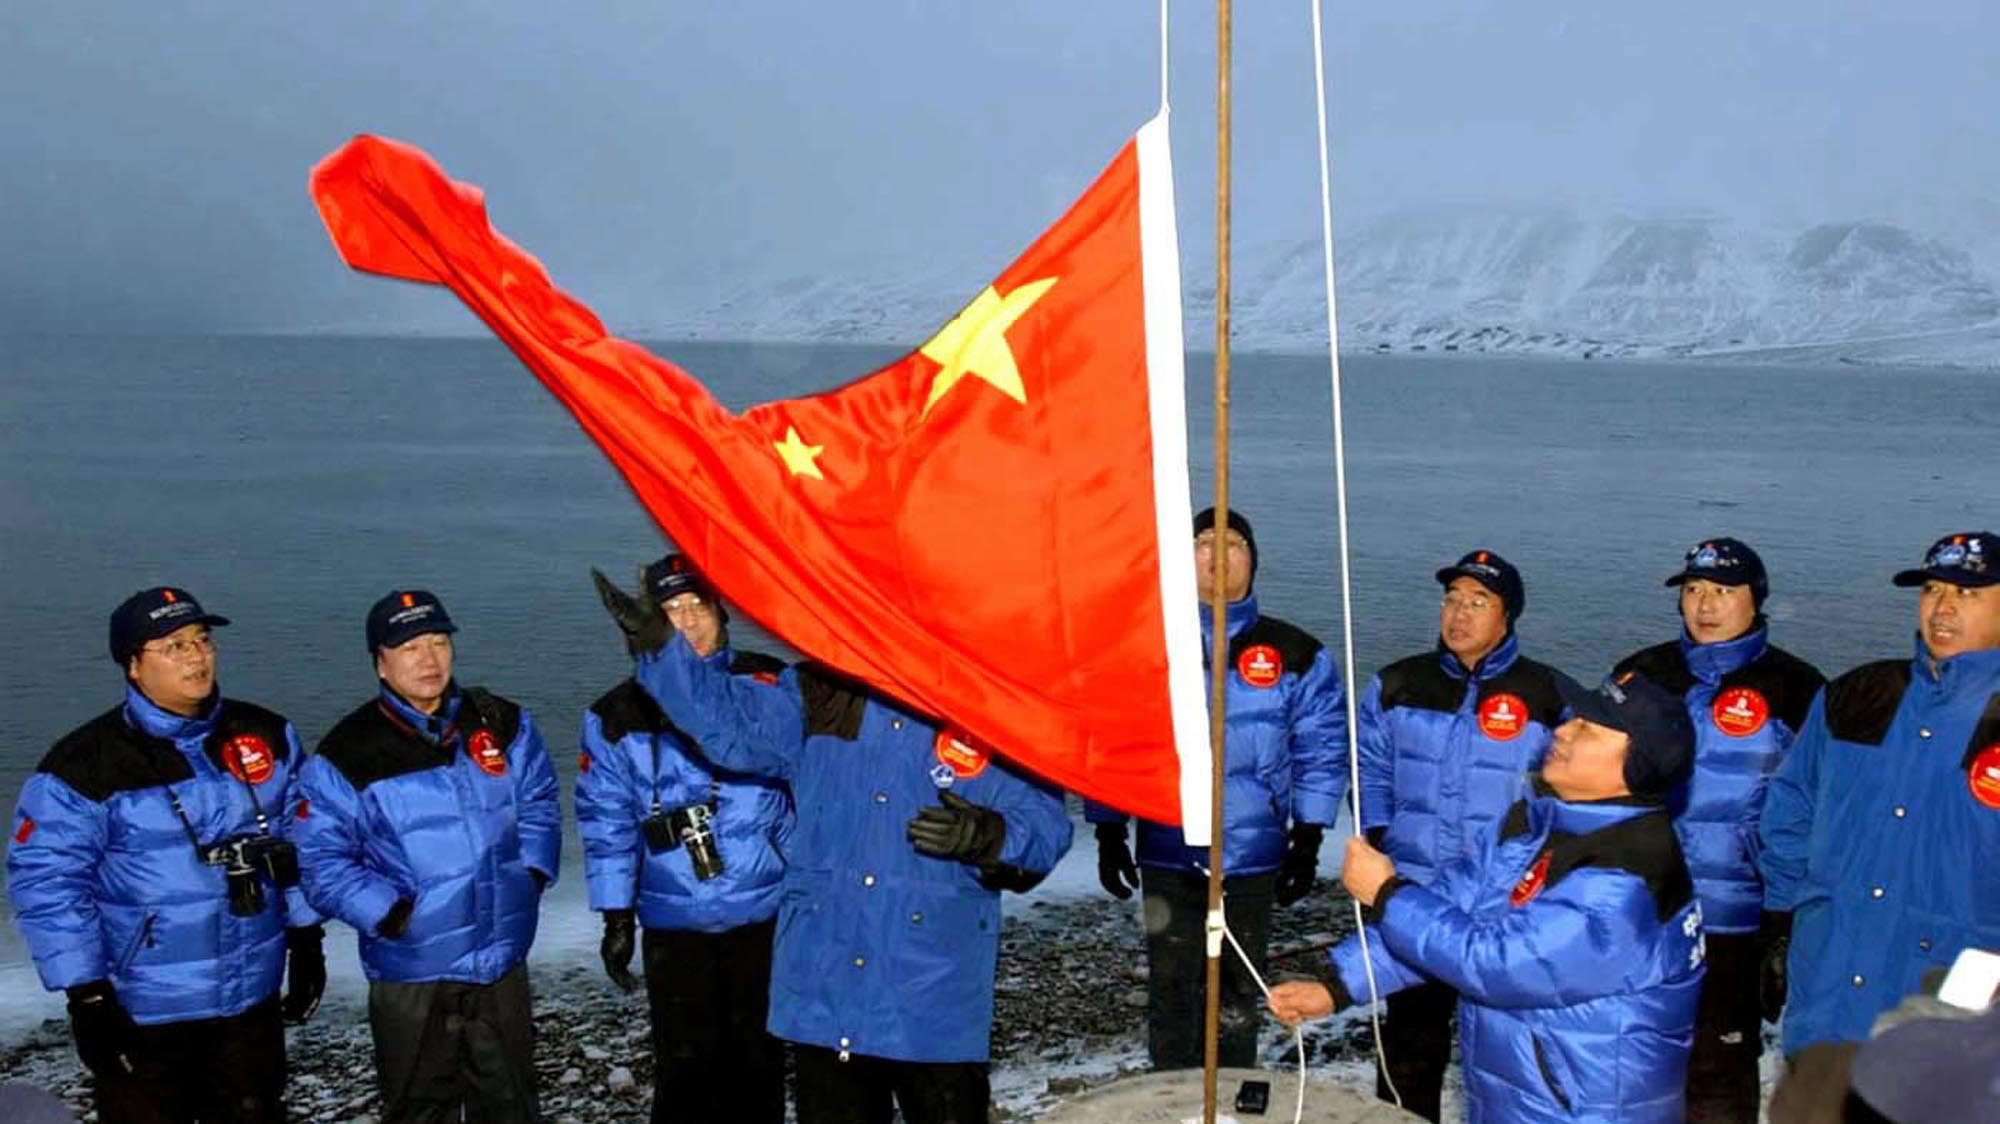 Members of the Chinese Yilite-Mulin Arctic Pole Expedition raise the Chinese national flag in Longyearbyen on Svalbard, Norway, to set the site of a Chinese research station on Wednesday, Oct. 31, 2001. (AP Photo/Xinhua/Yuan Man